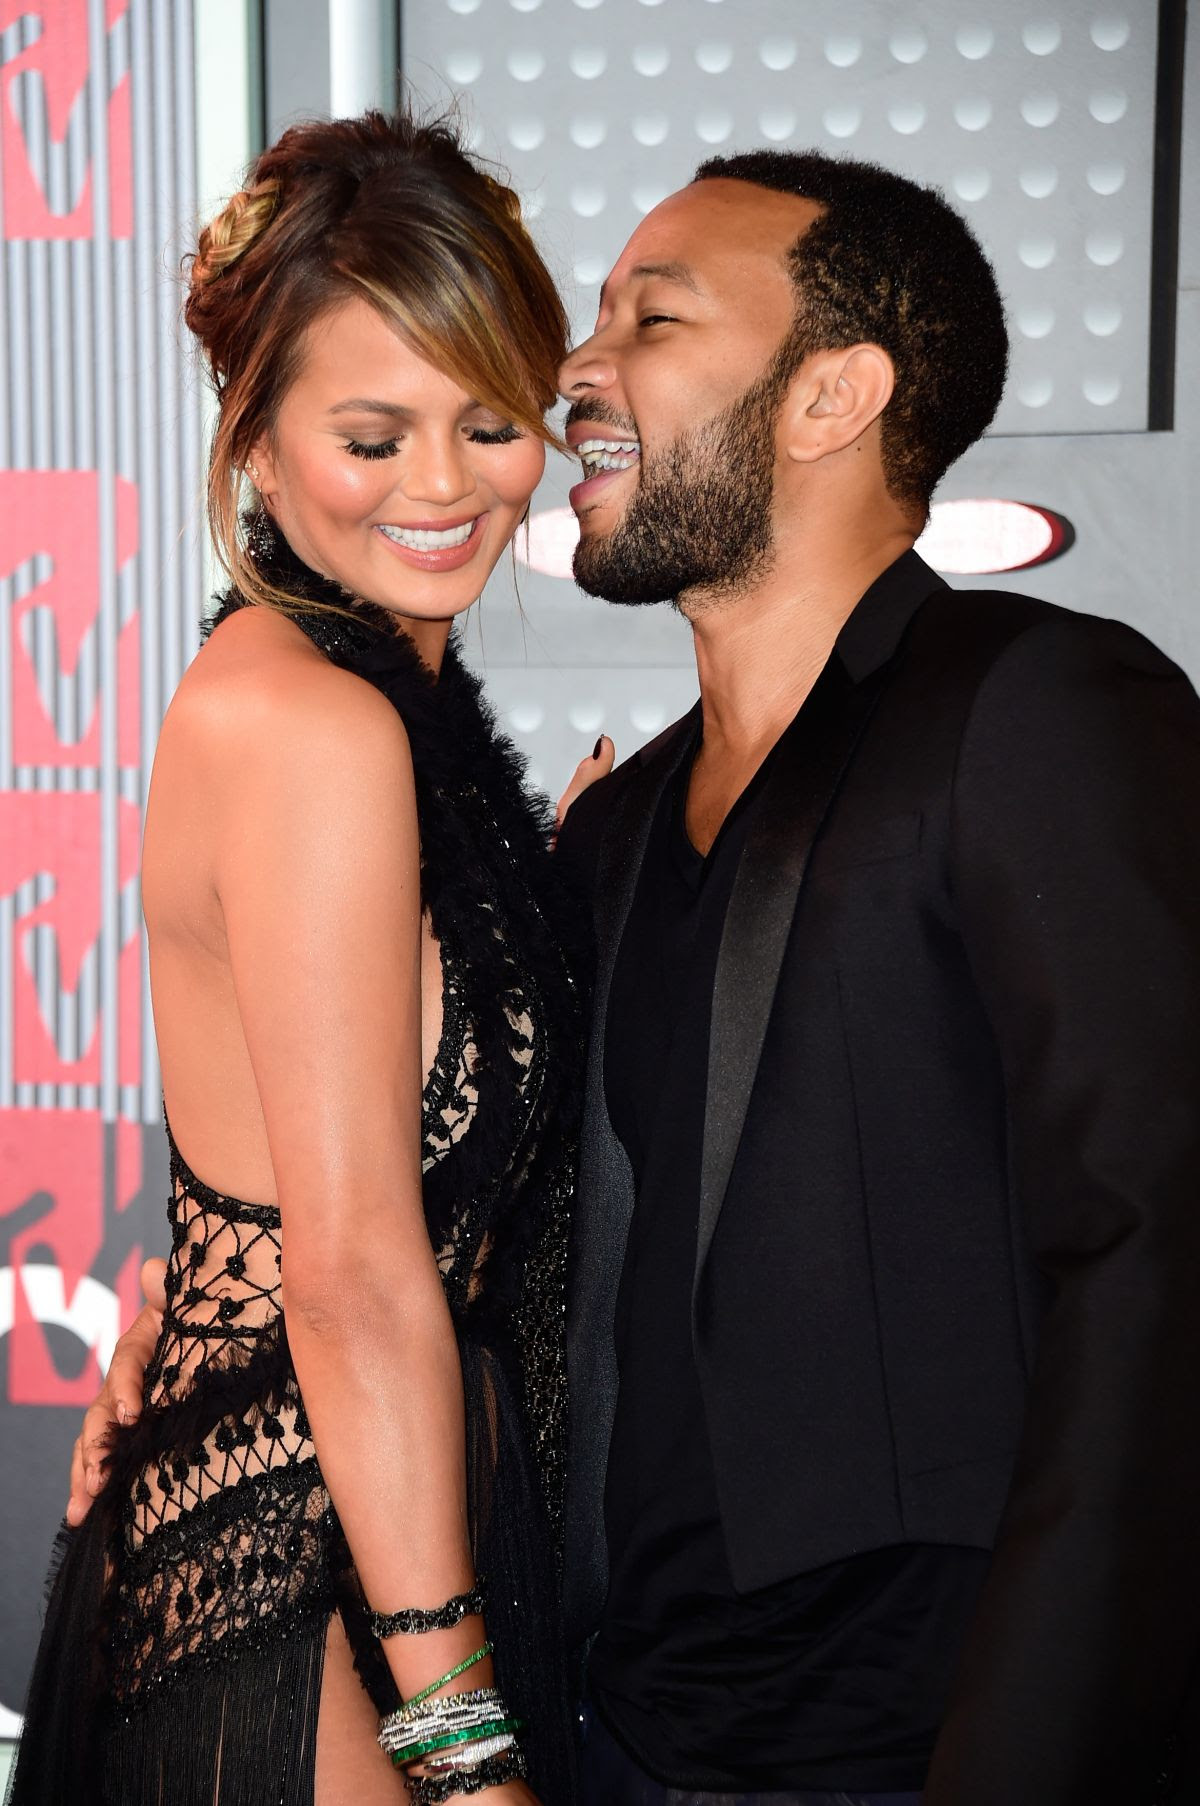 http://www.celebzz.com/wp-content/uploads/2015/08/chrissy-teigen-at-2015-mtv-video-music-awards_7.jpg